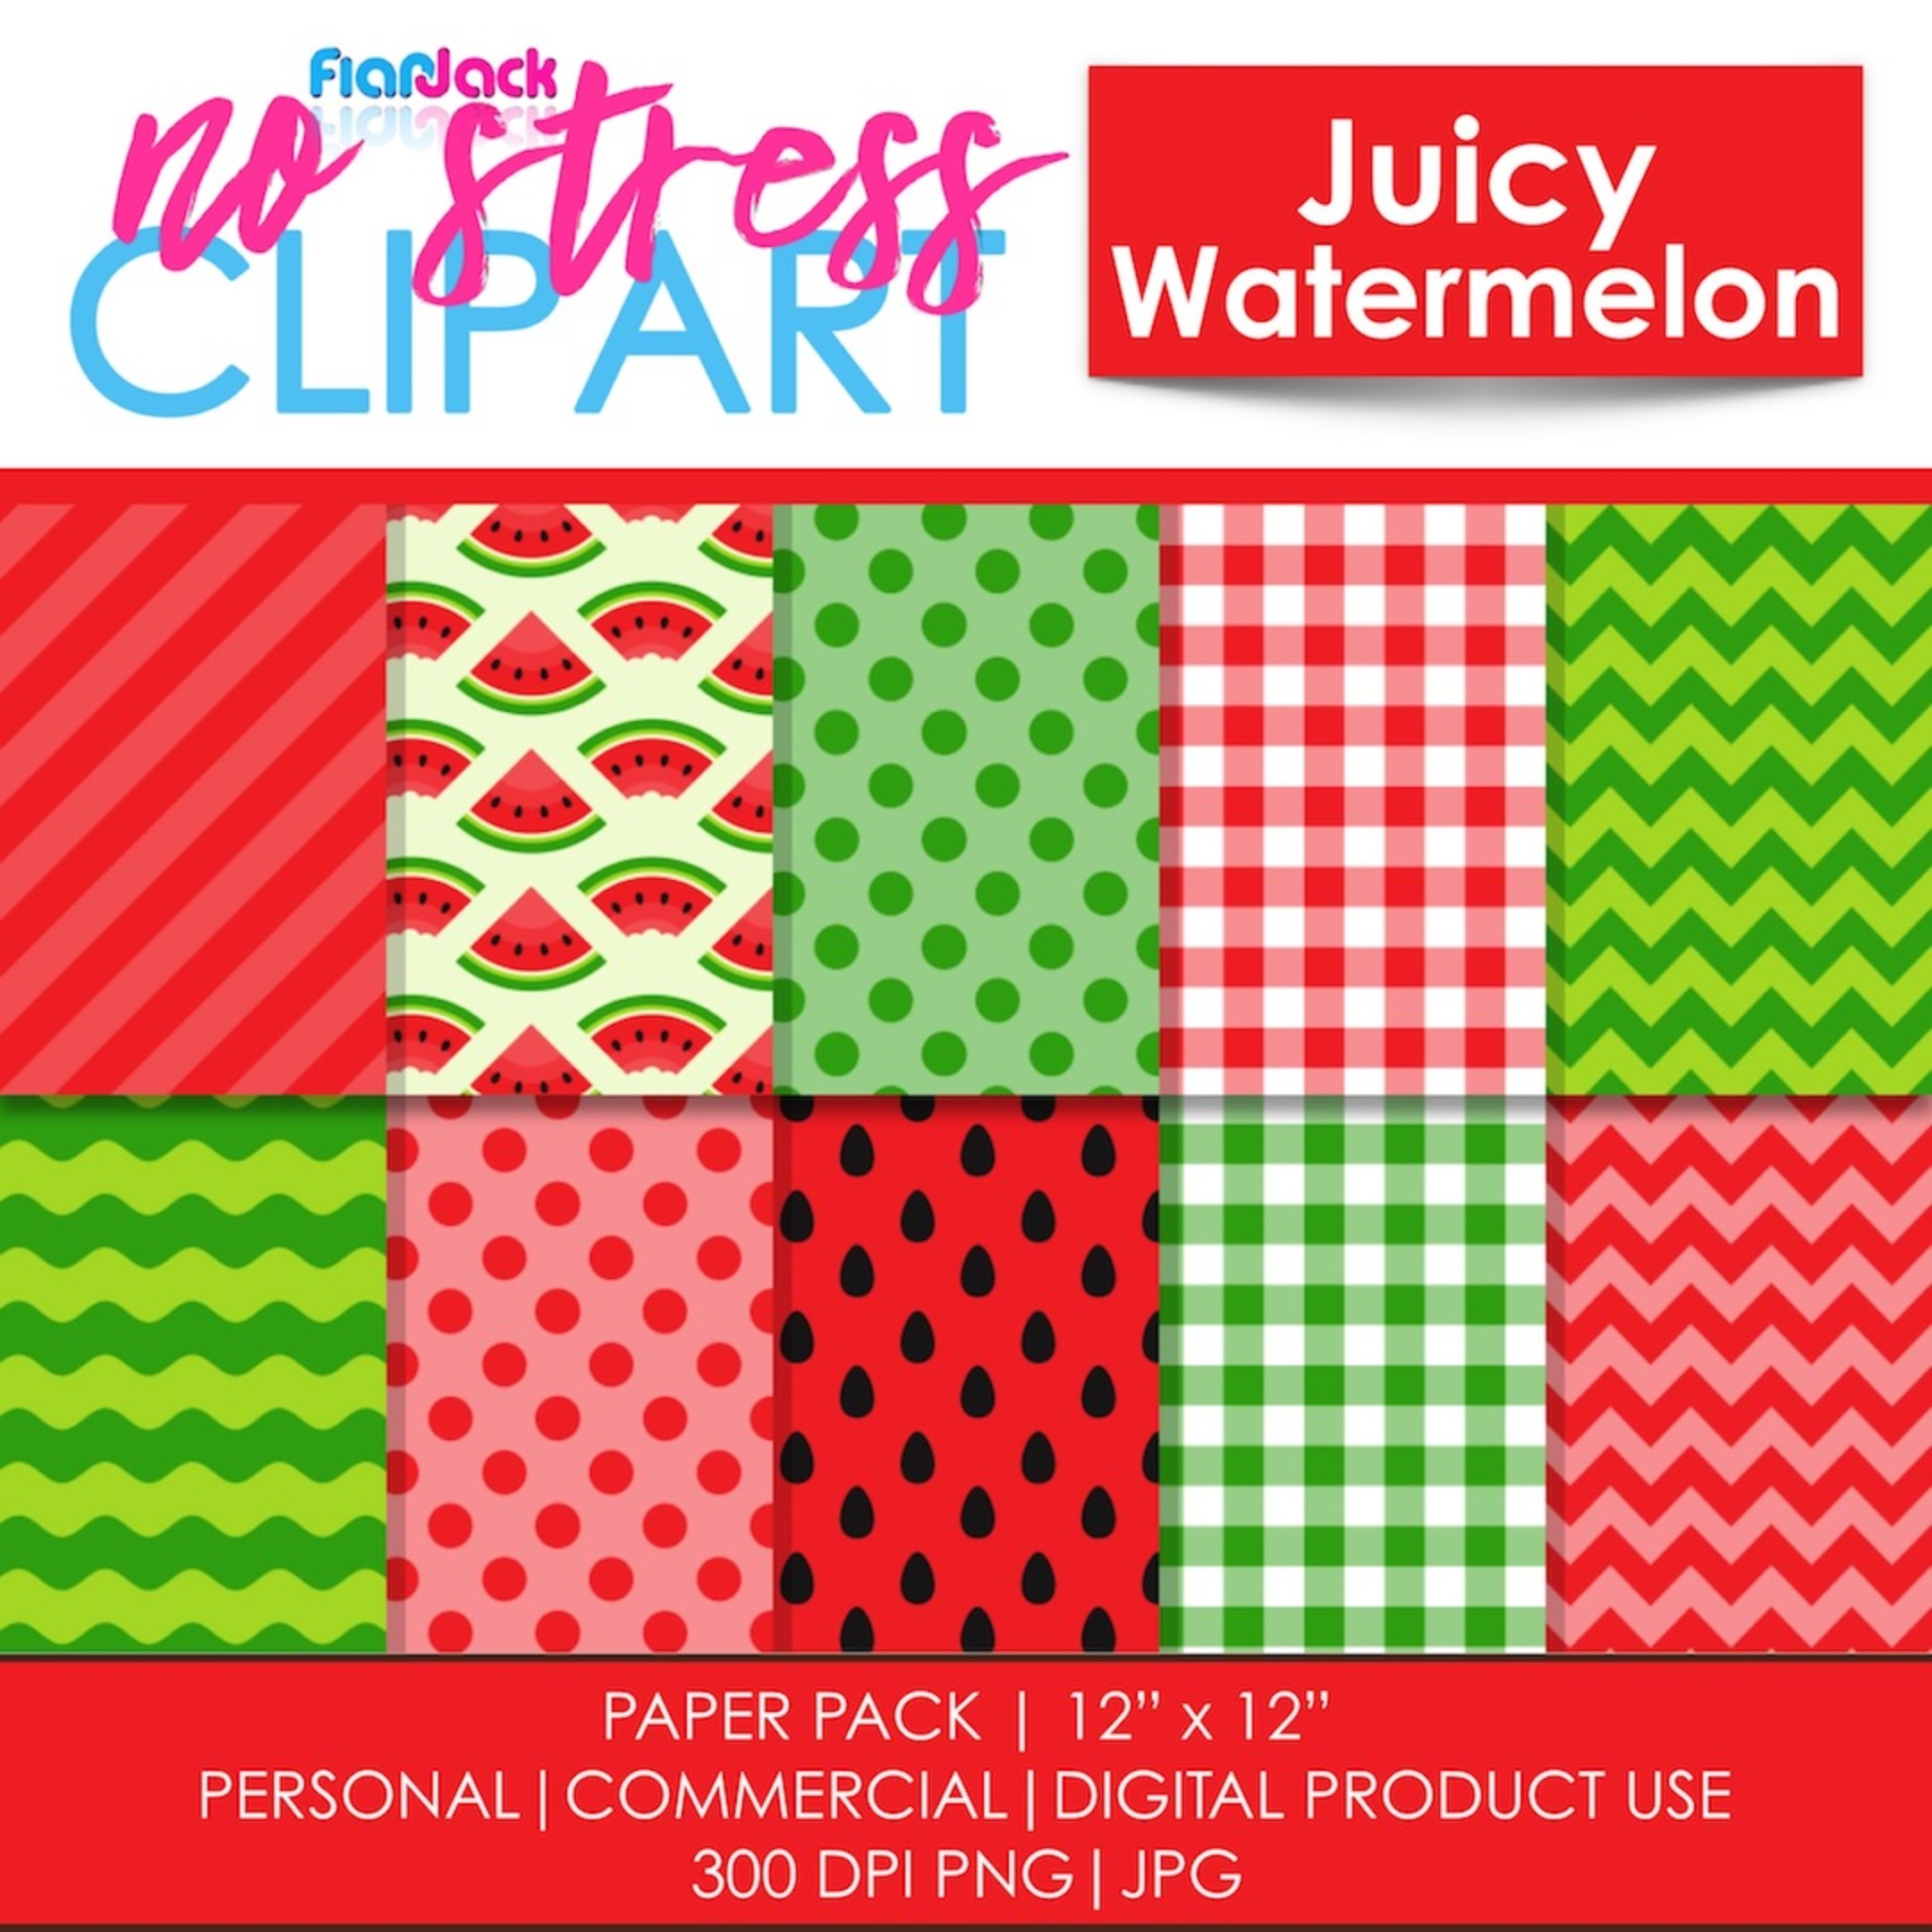 Juicy Watermelon Digital Papers